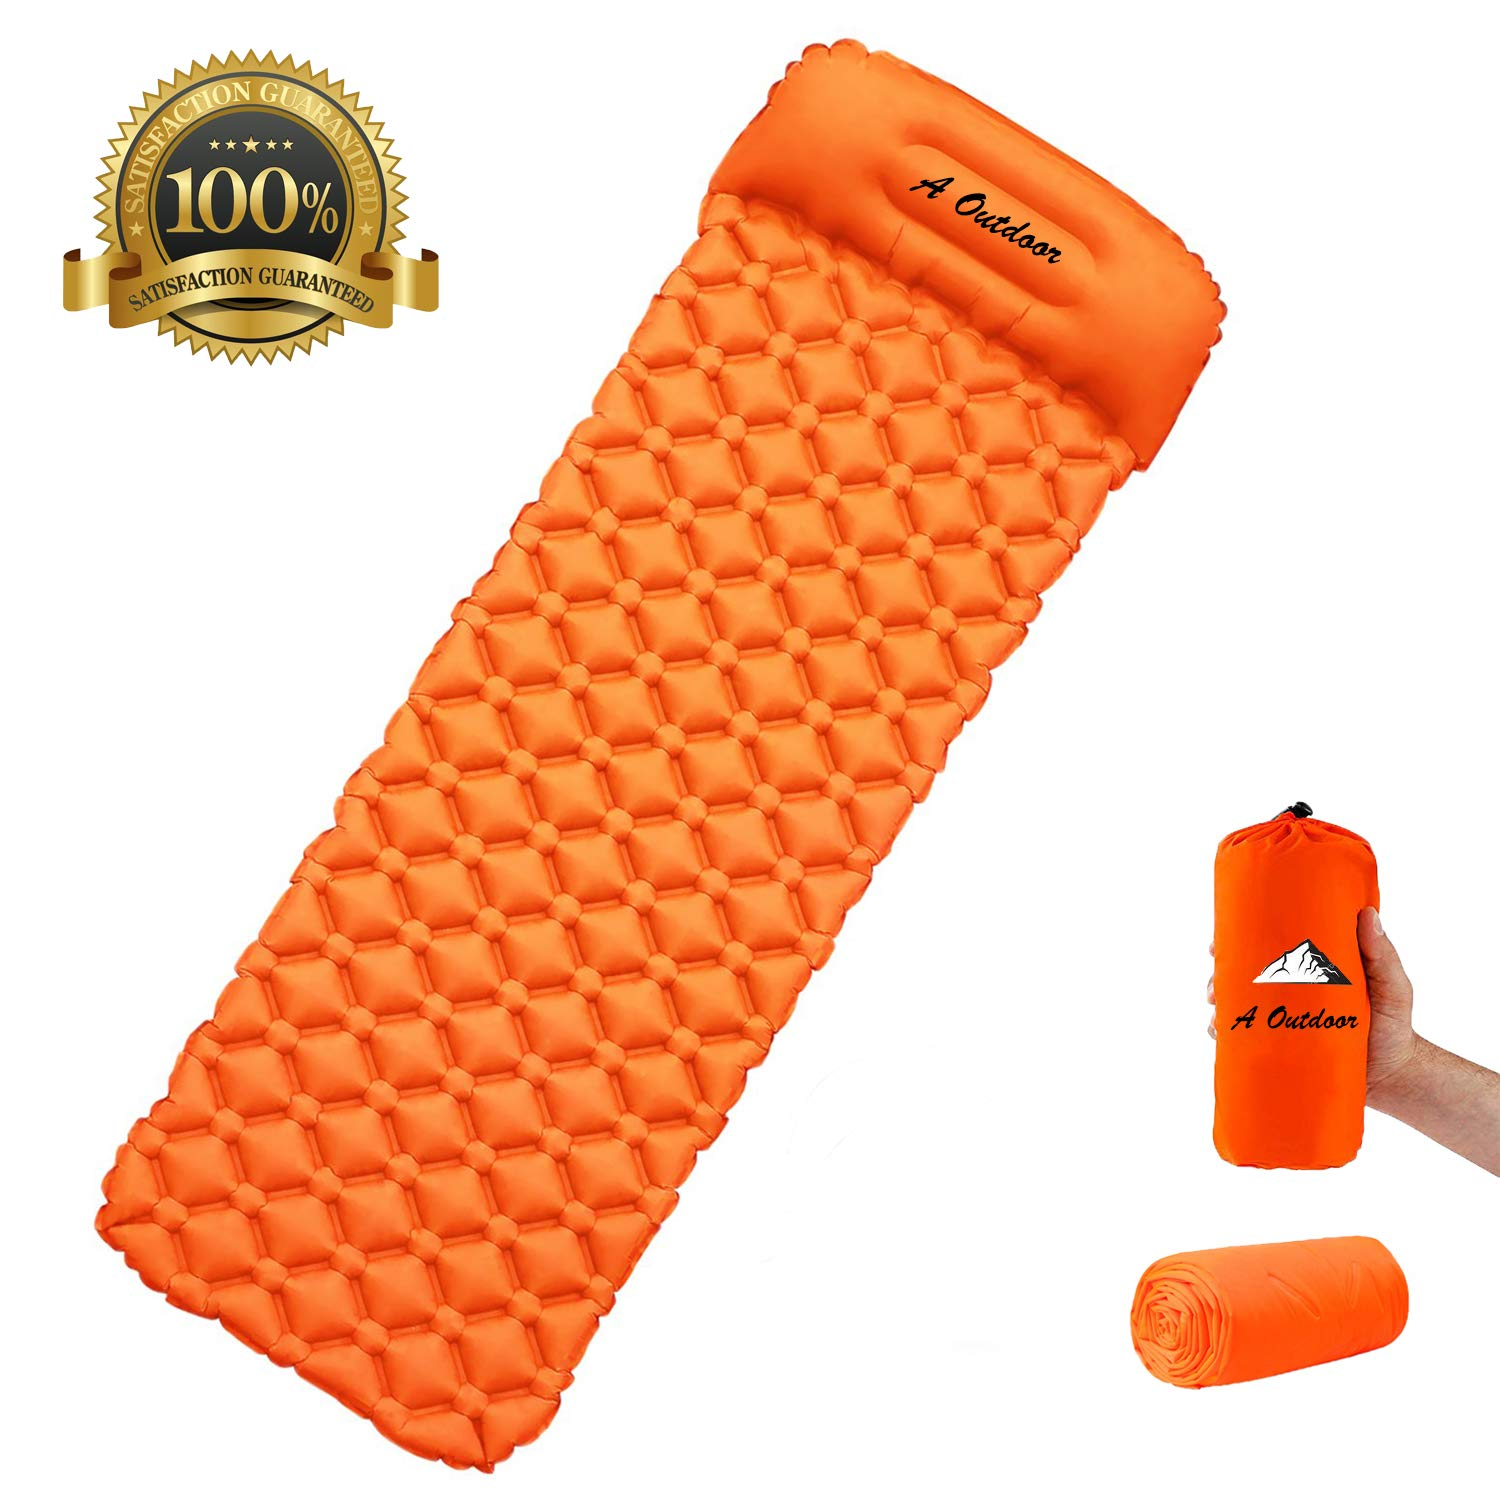 A Outdoor Camping Sleeping Pads,Self Inflating Pads, Inflatable Air Mat with Pillow, 740g Ultralight Sleeping Mat with Small Packing Size,Air Mattresses Suit for Travelling, Camping, Hiking, Beach by A Outdoor